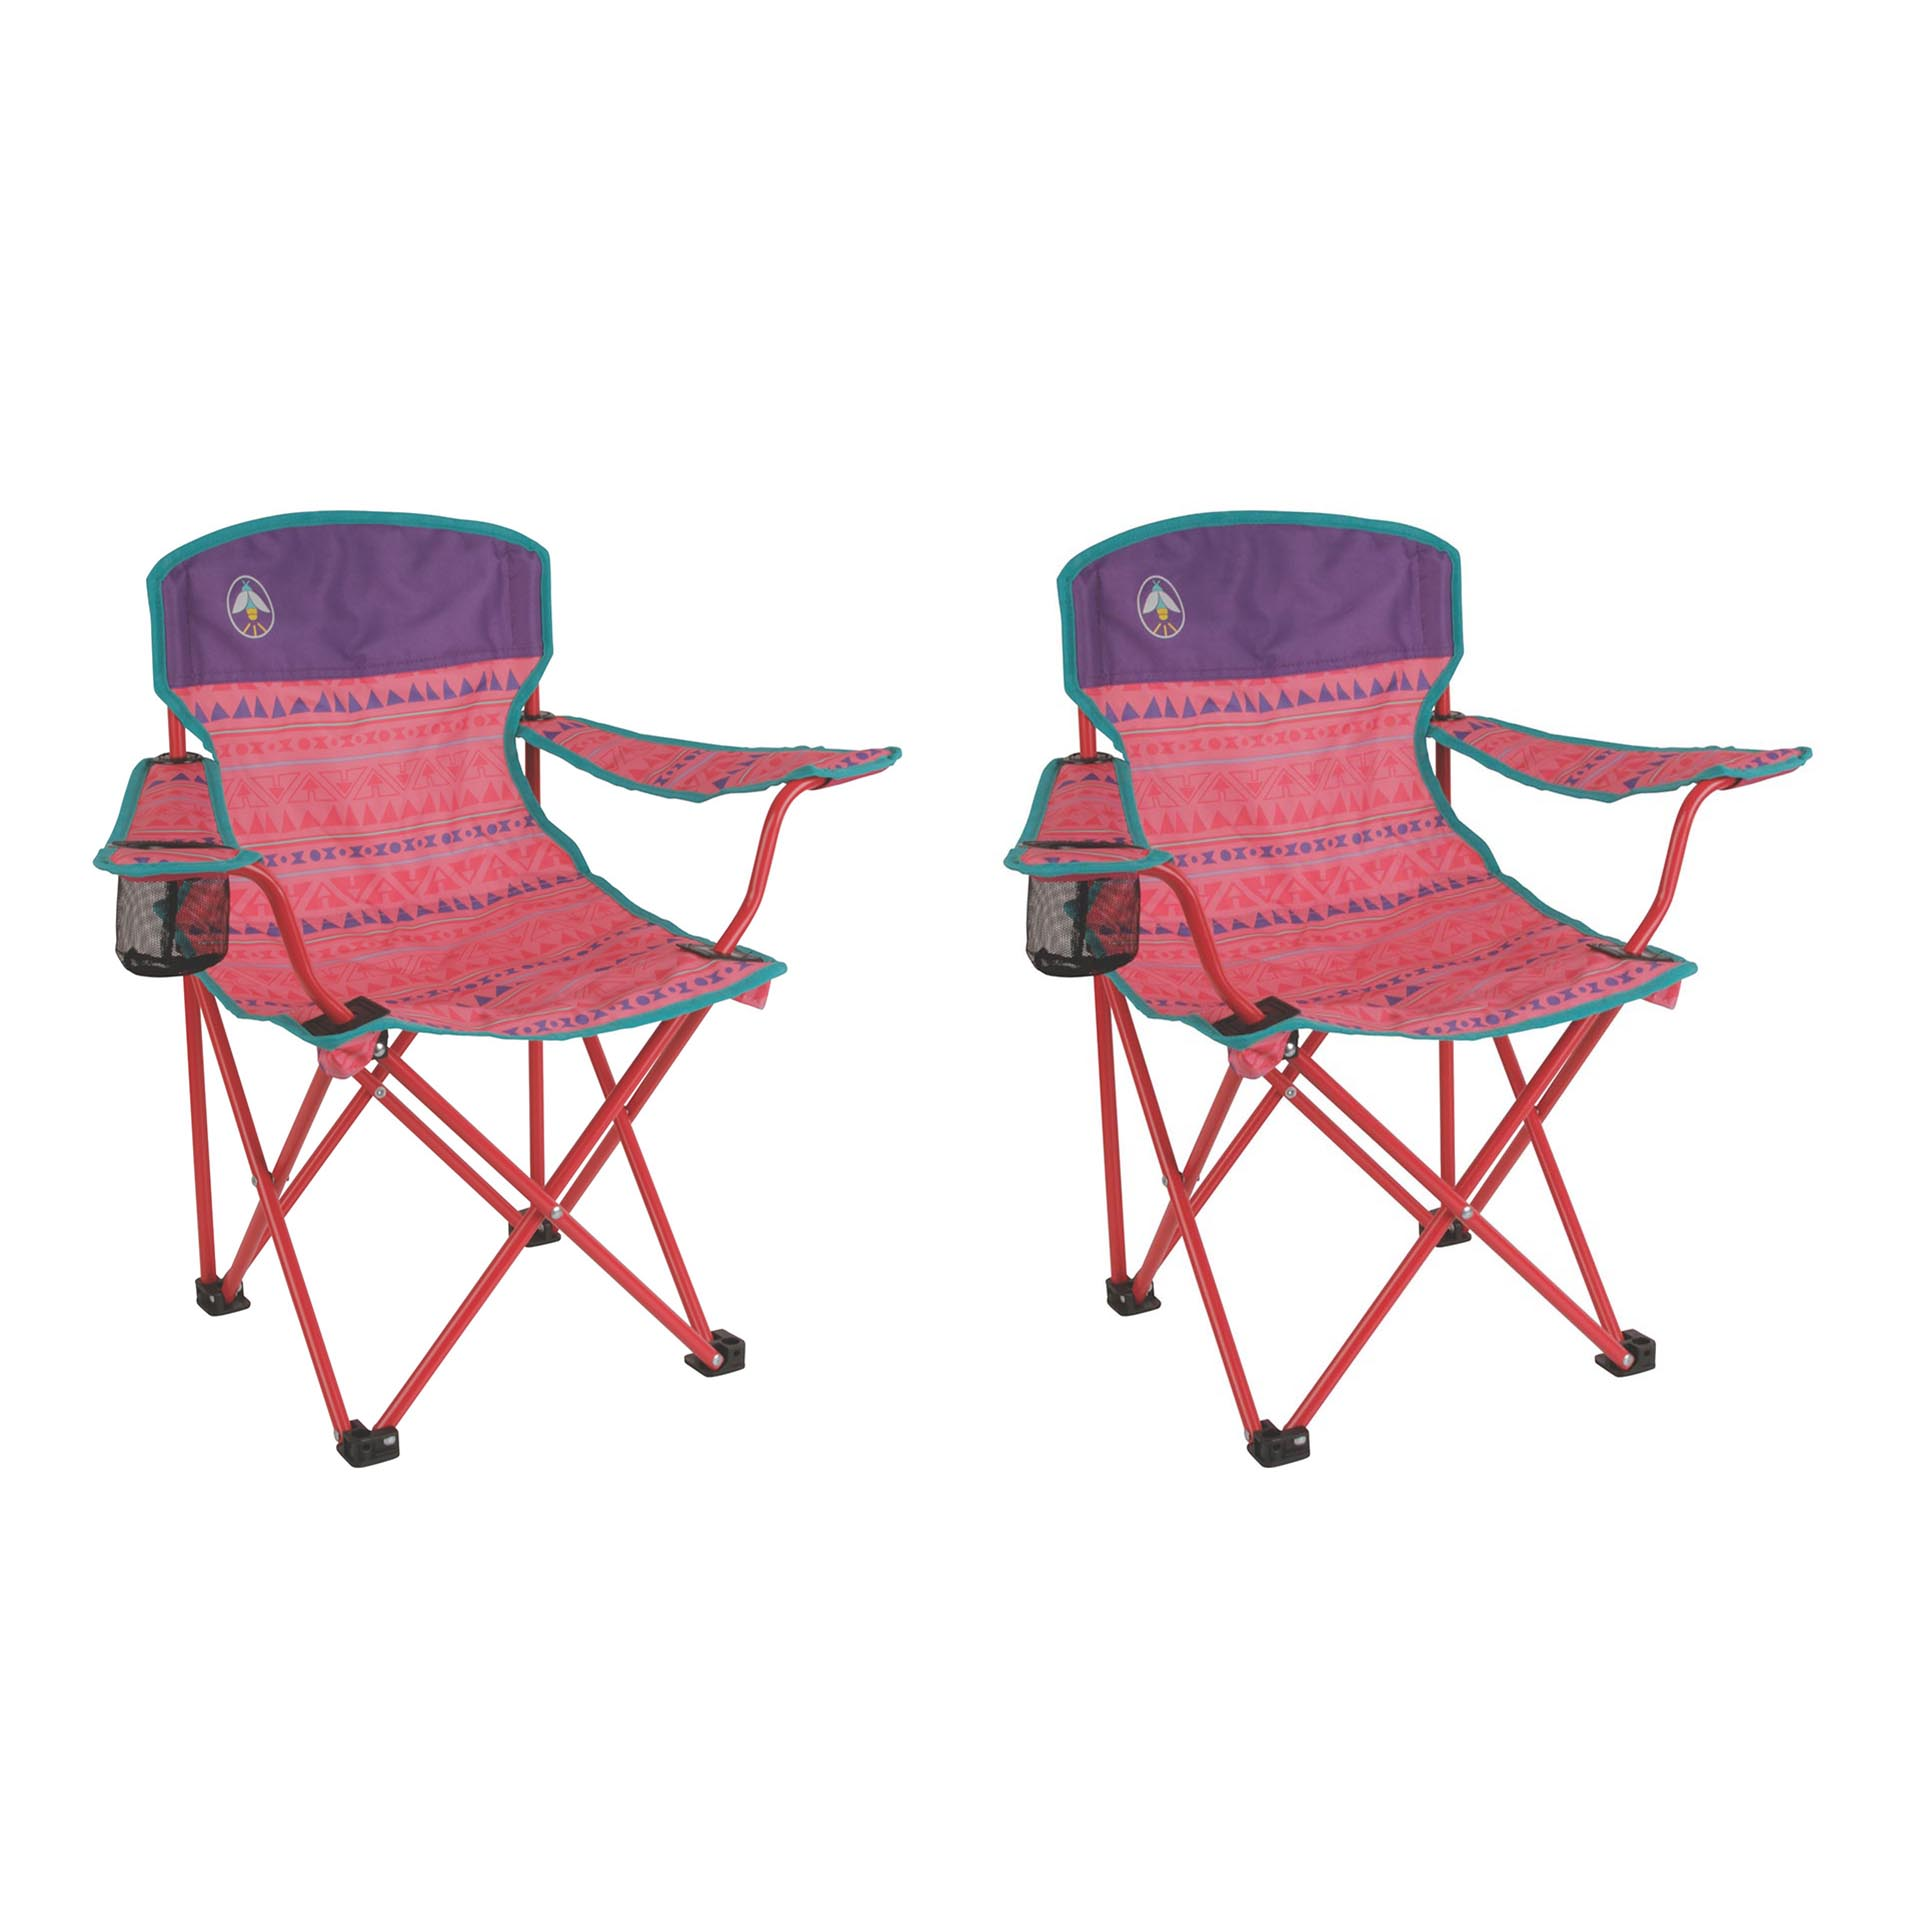 Coleman Kids Camping Glow-in-the-Dark Pink Quad Chairs (2 Pack) | 2 x 2000025293